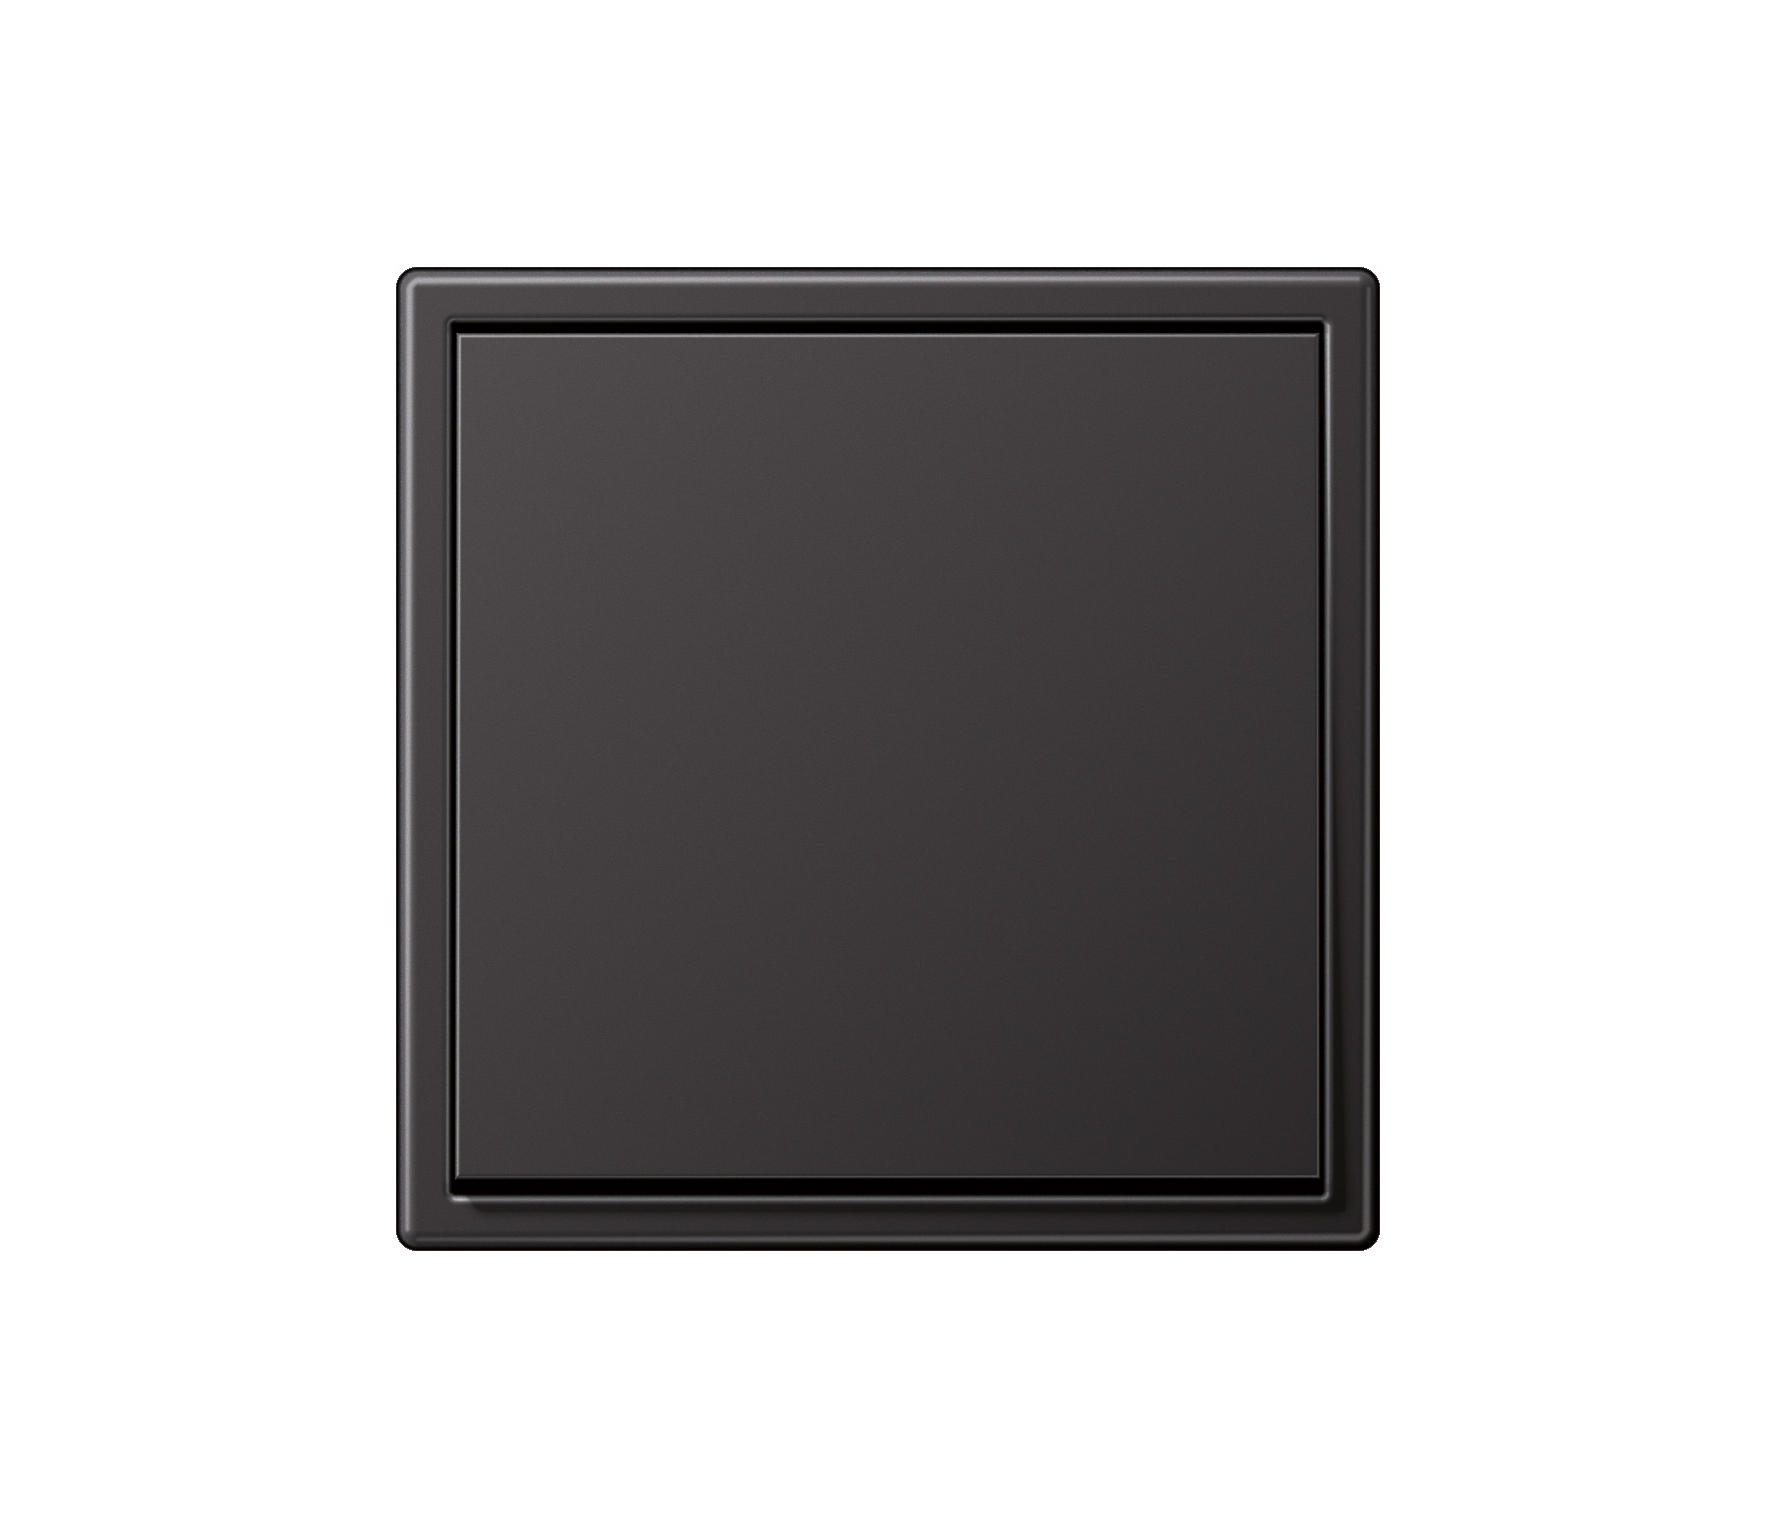 ls 990 aluminum dark switch two way switches from jung architonic. Black Bedroom Furniture Sets. Home Design Ideas